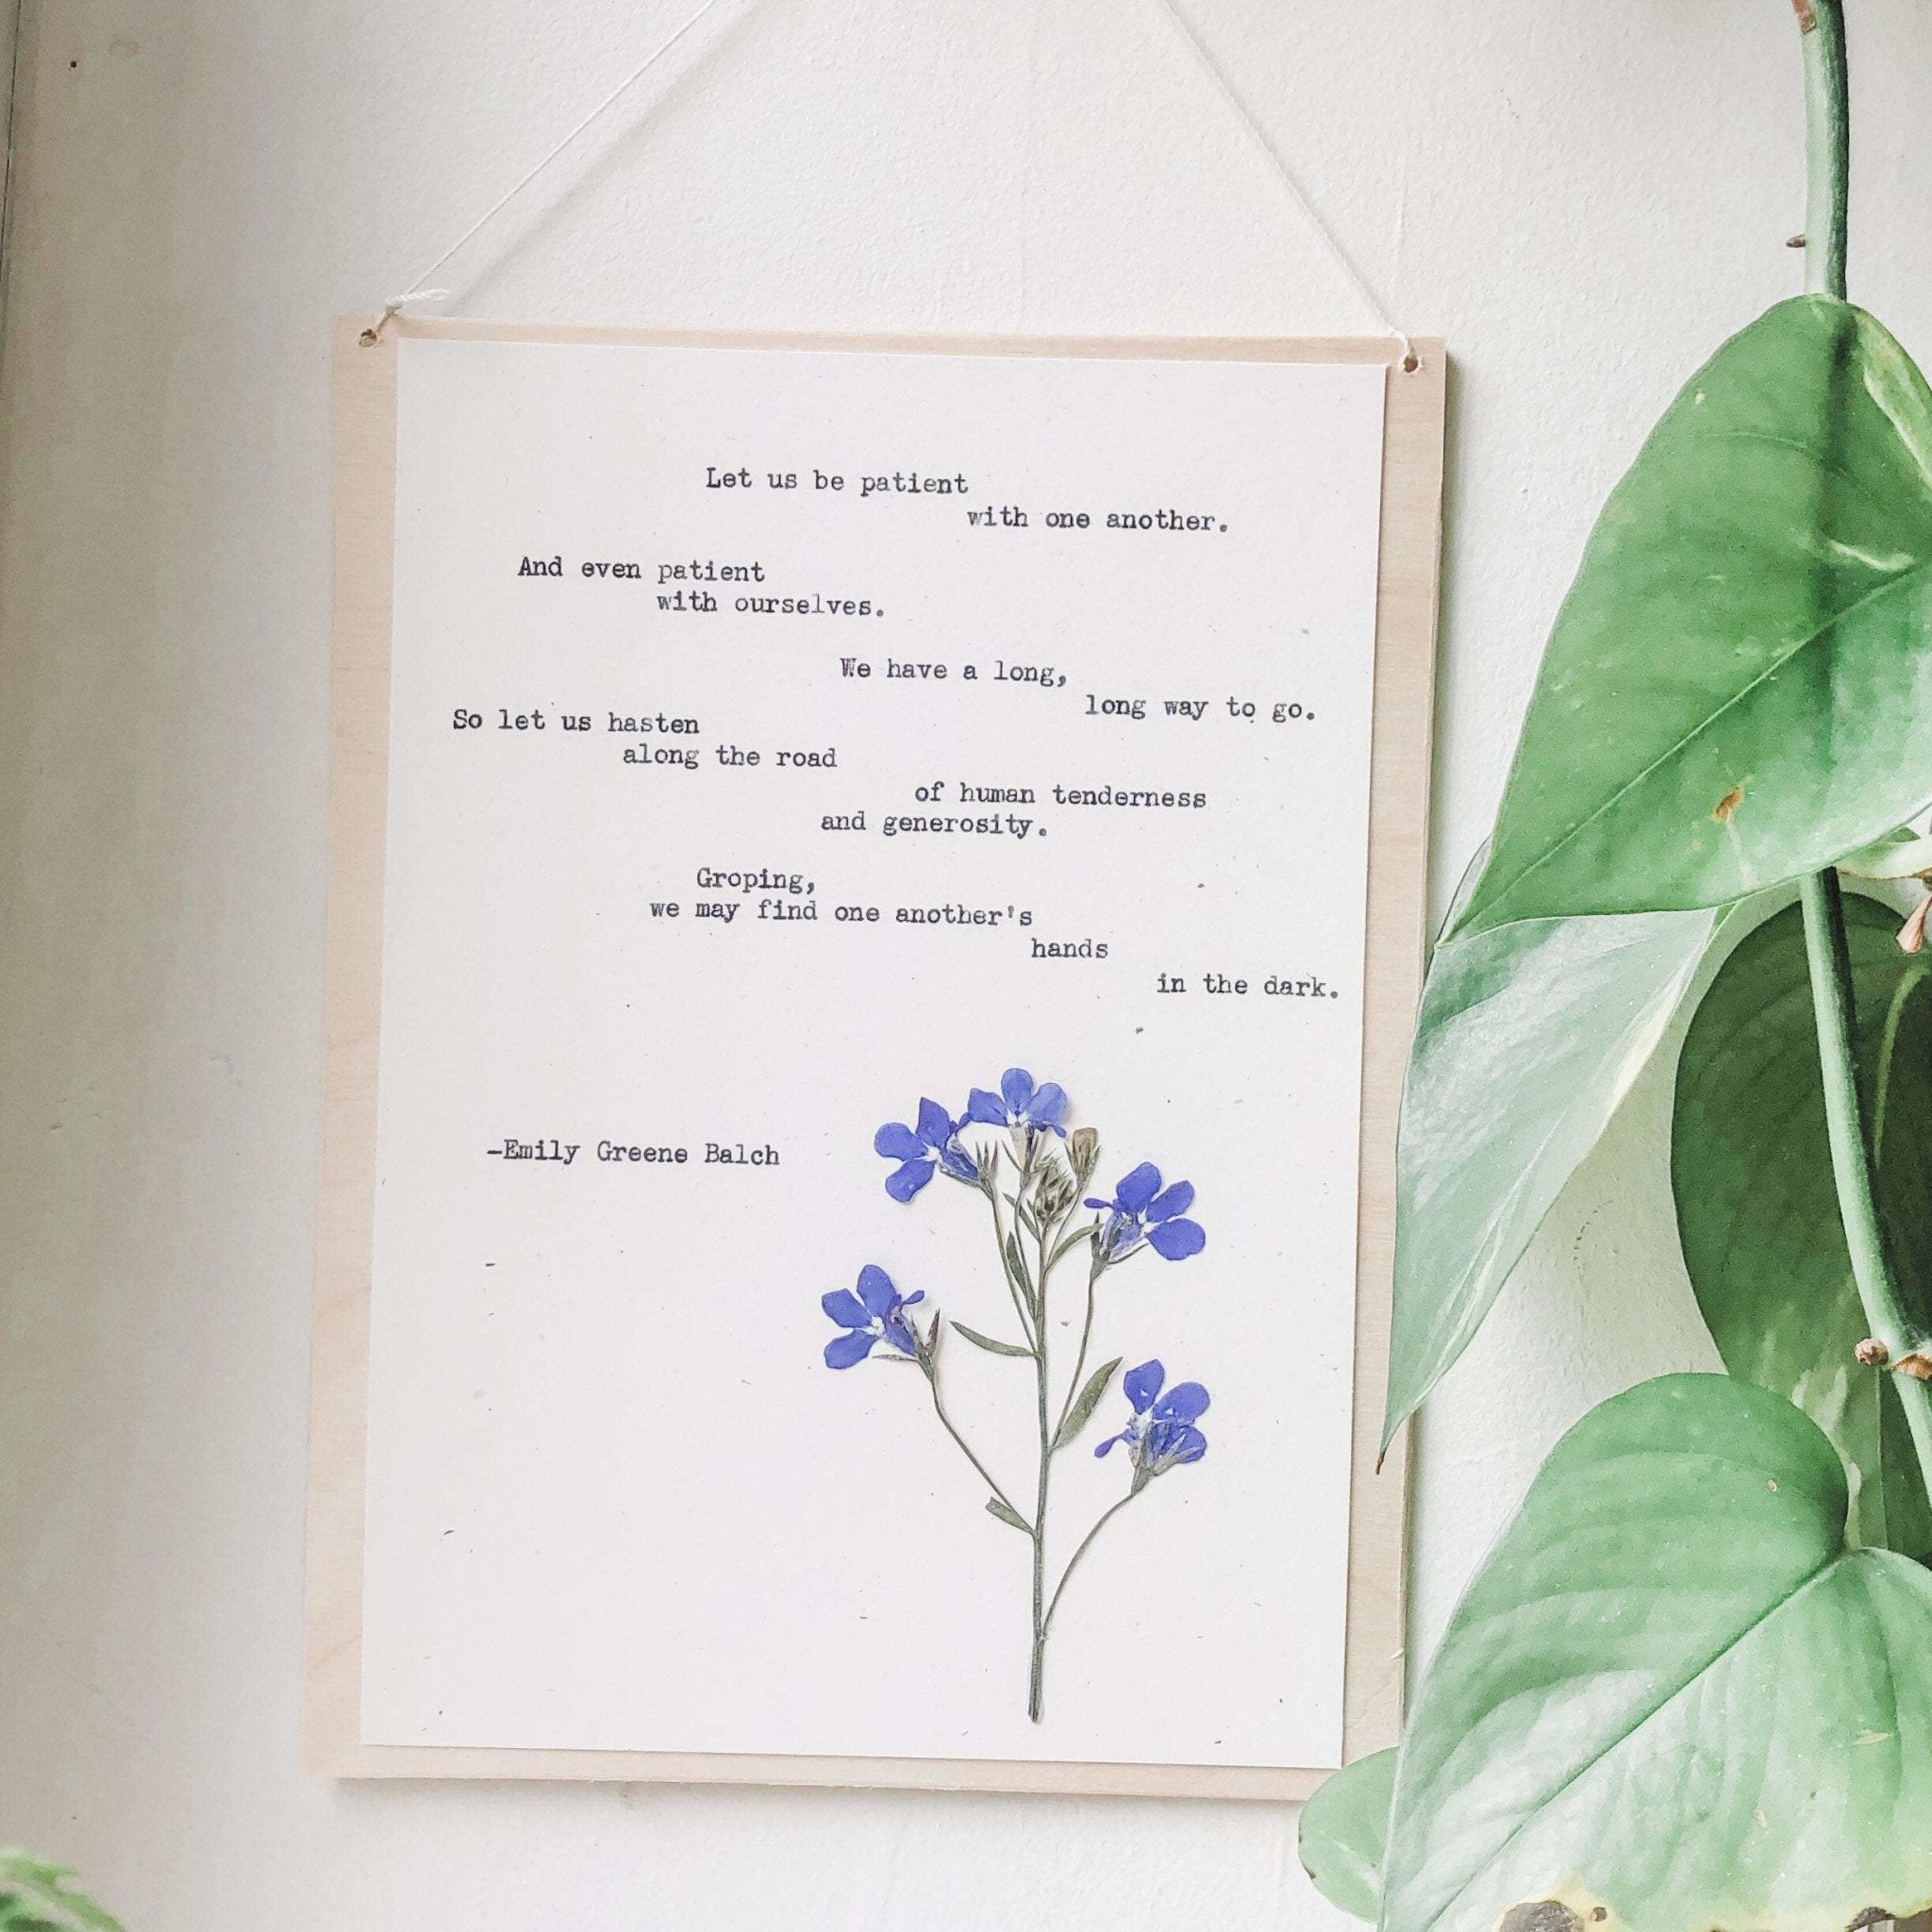 emily greene balch quote typed in typewriter font on white paper, mounted on birch wood and paired with a pressed flower. handmade décor by flora & phrase